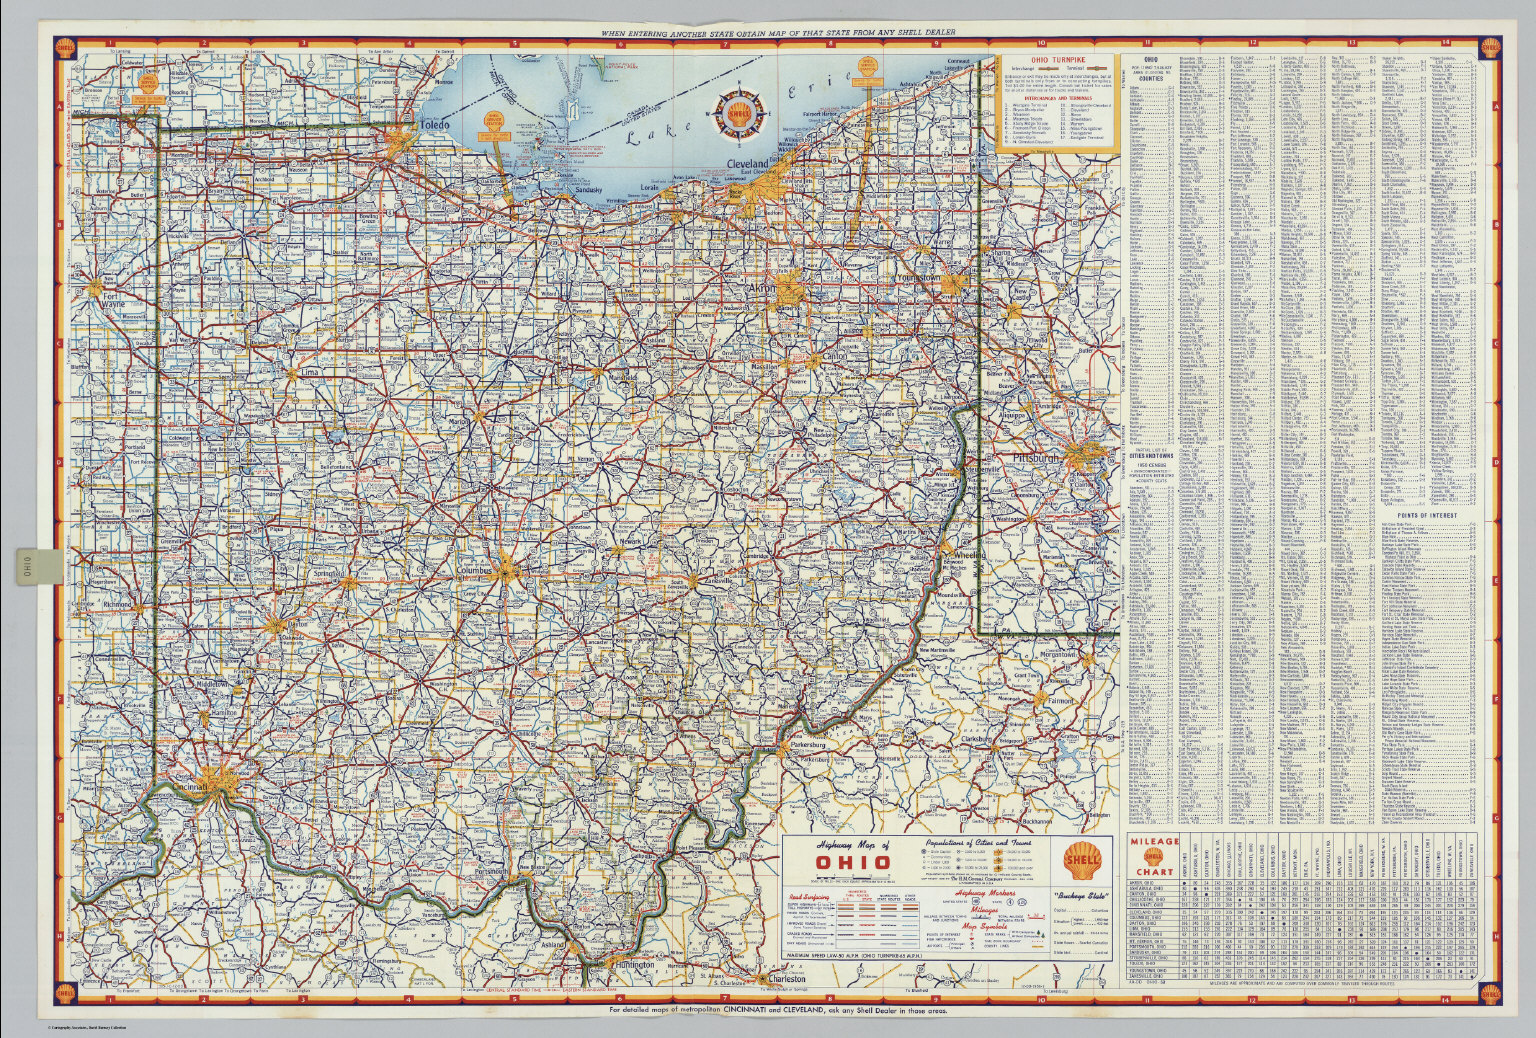 Shell Highway Map Of Ohio David Rumsey Historical Map Collection - Ohio roadmap